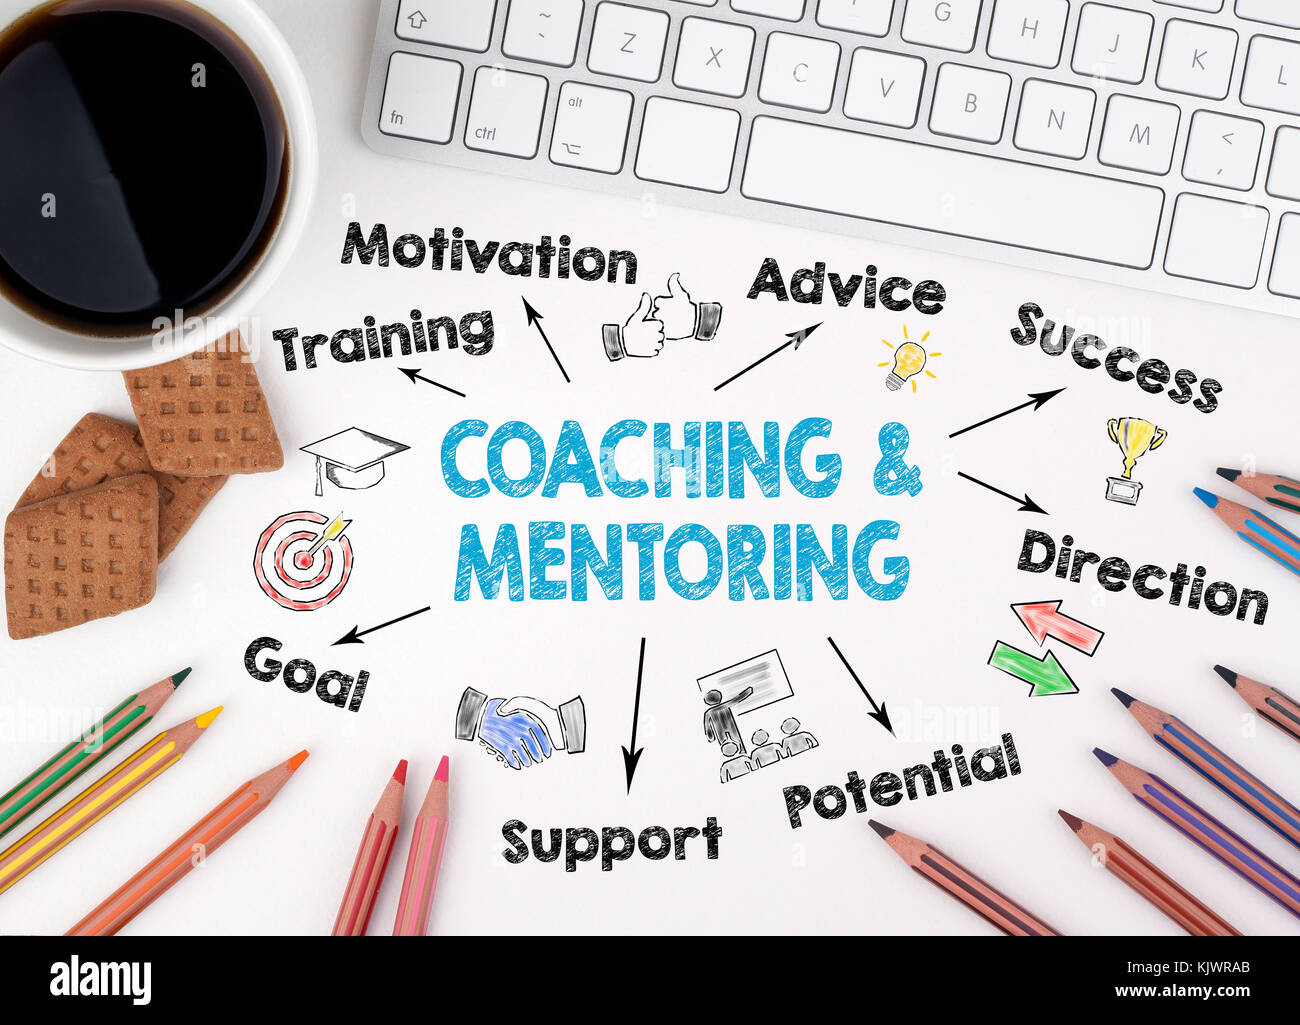 Coaching and Mentoring Concept. Chart with keywords and icons. White office desk Stock Photo